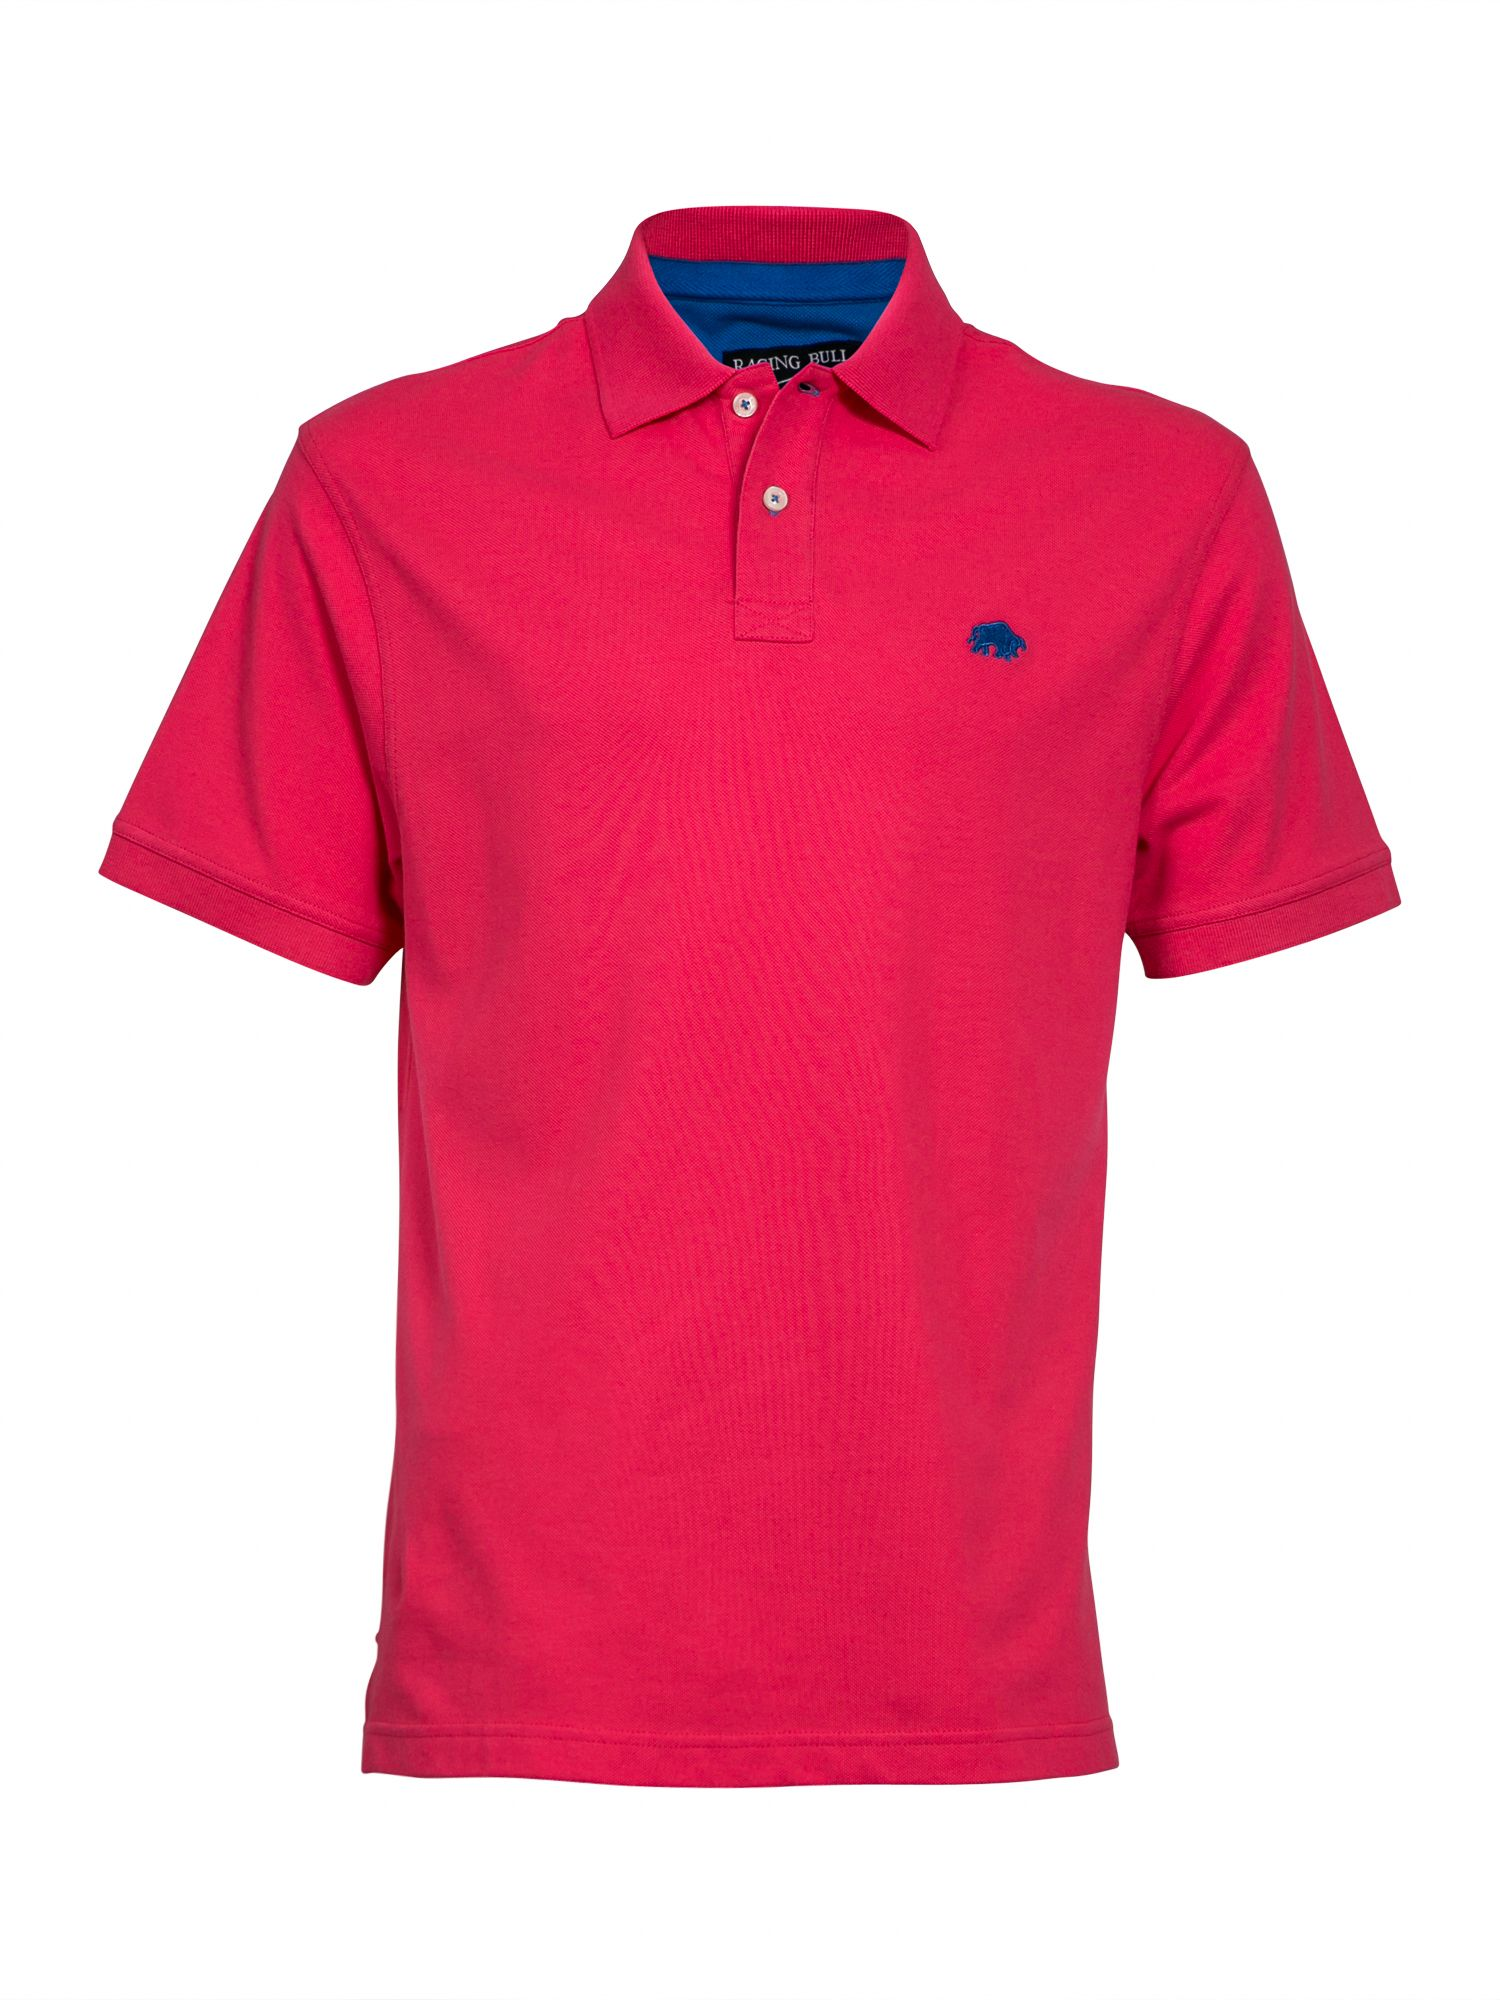 Men's Raging Bull Big & Tall New Signature Polo Shirt, Pink